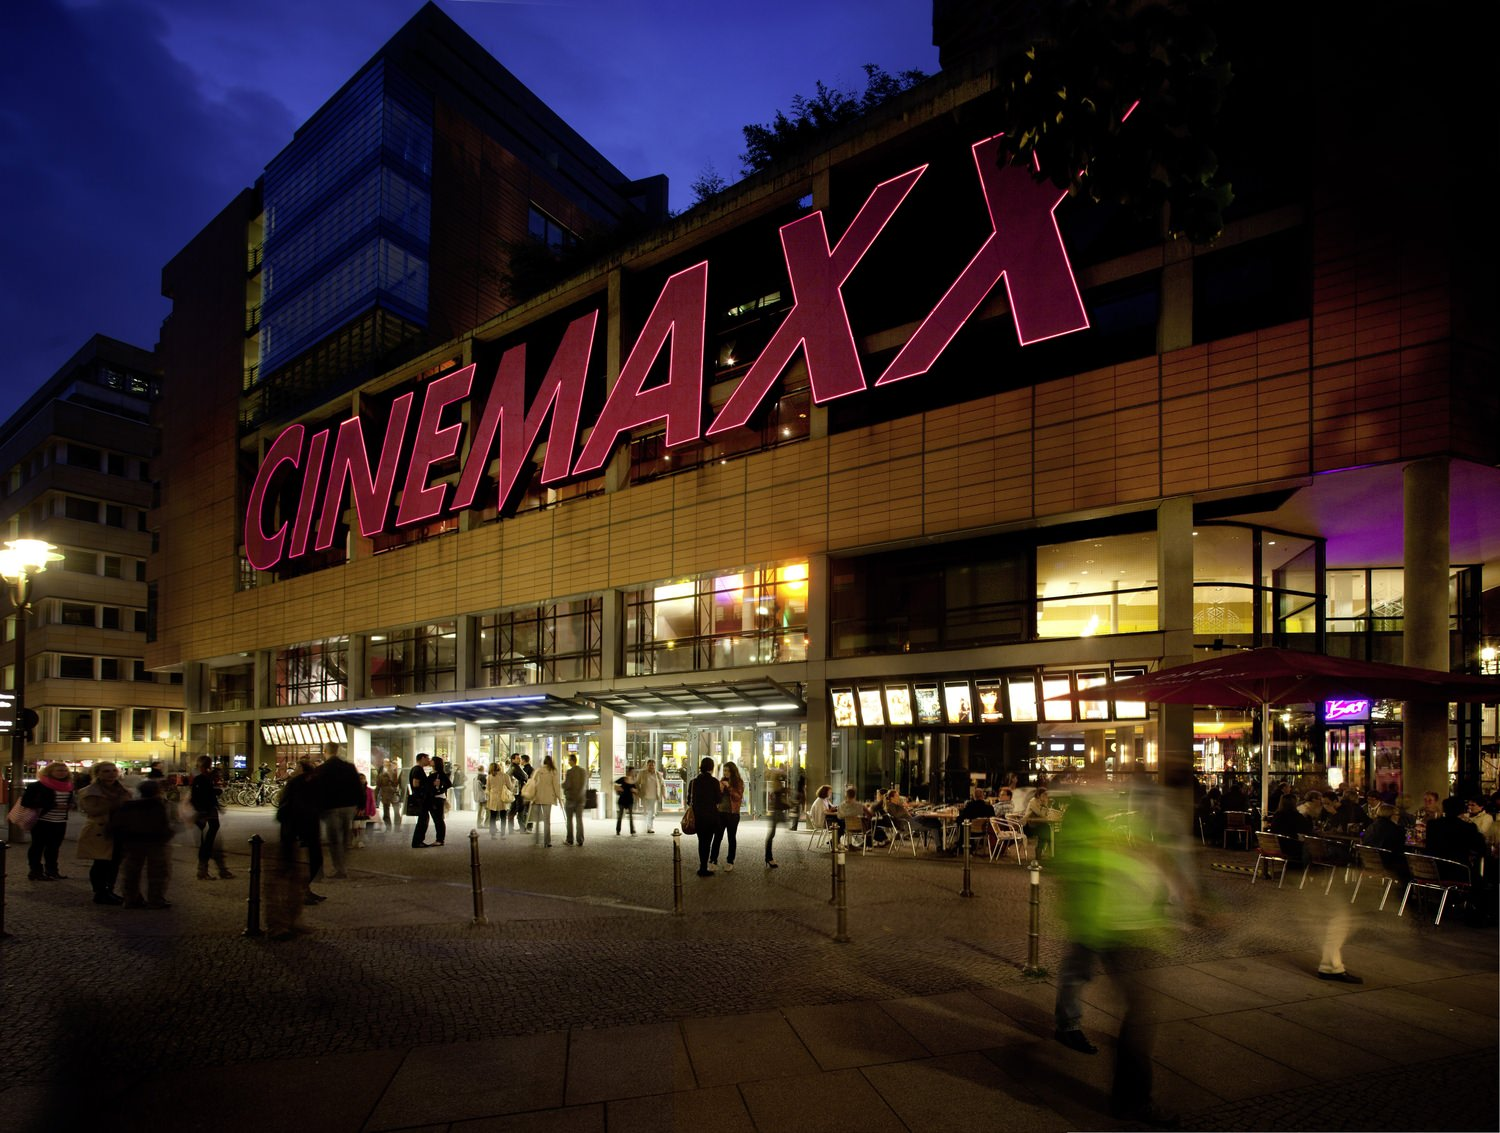 A movie theater that has up a sign that says Cinemaxx on it and there are people walking up to it.